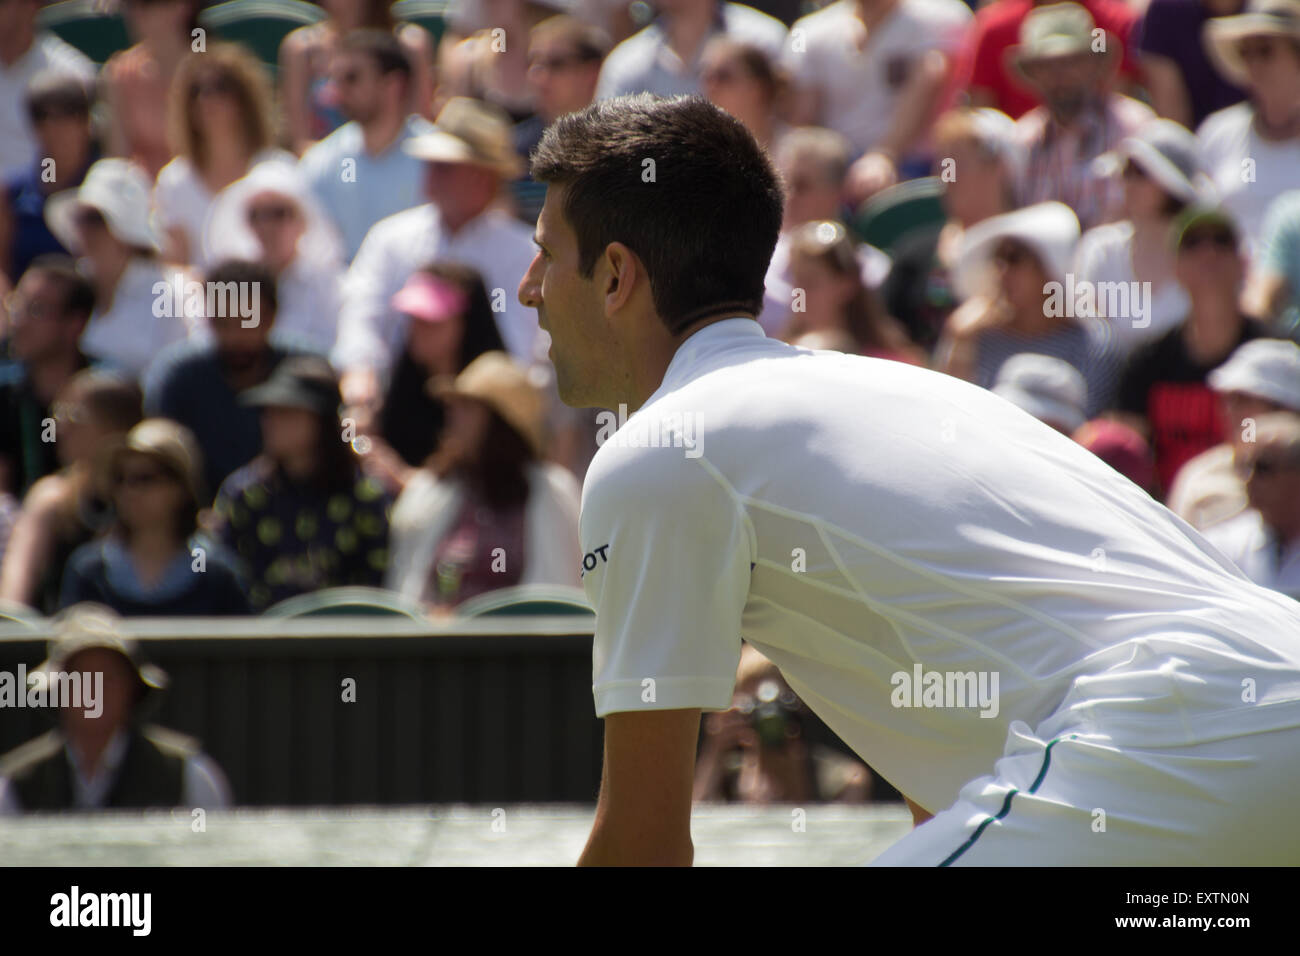 Novak Djokovic, Centre Court, Wimbledon 2015 on day 1 - Stock Image